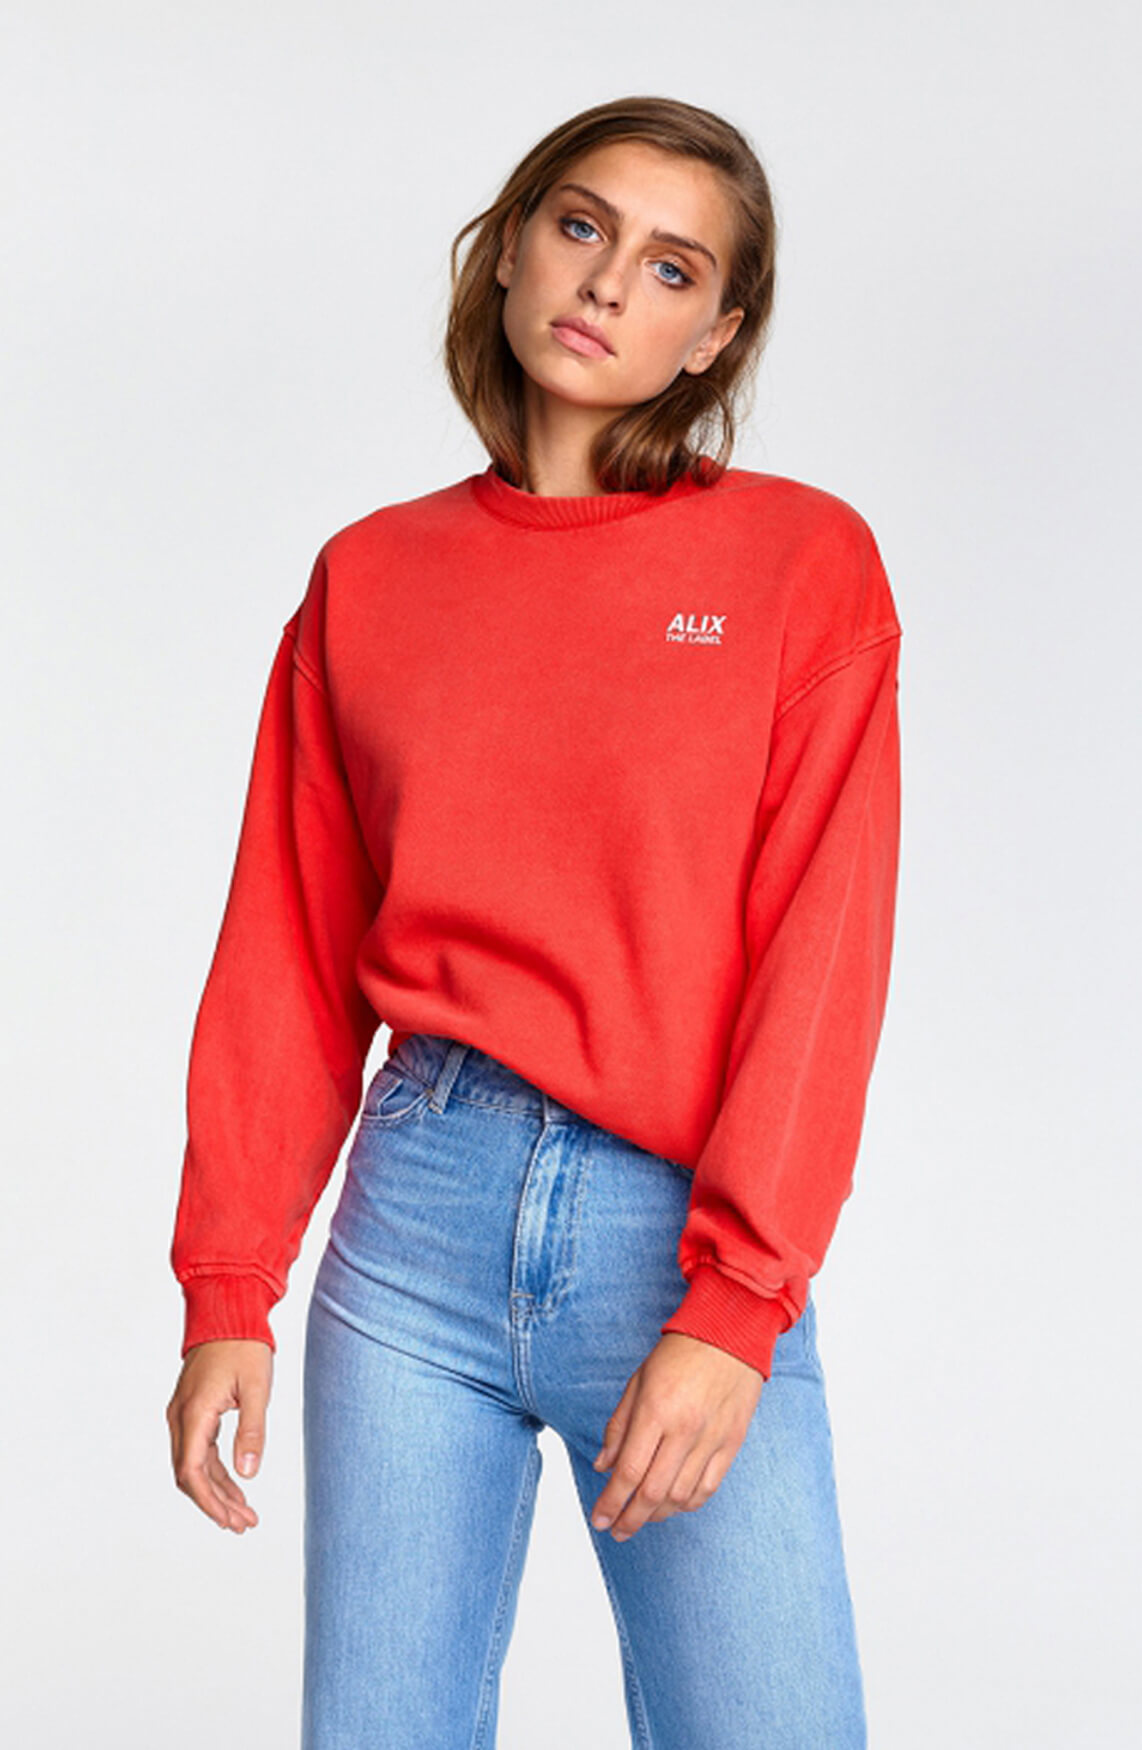 Alix The Label Dames Oversized On Tour sweater Rood